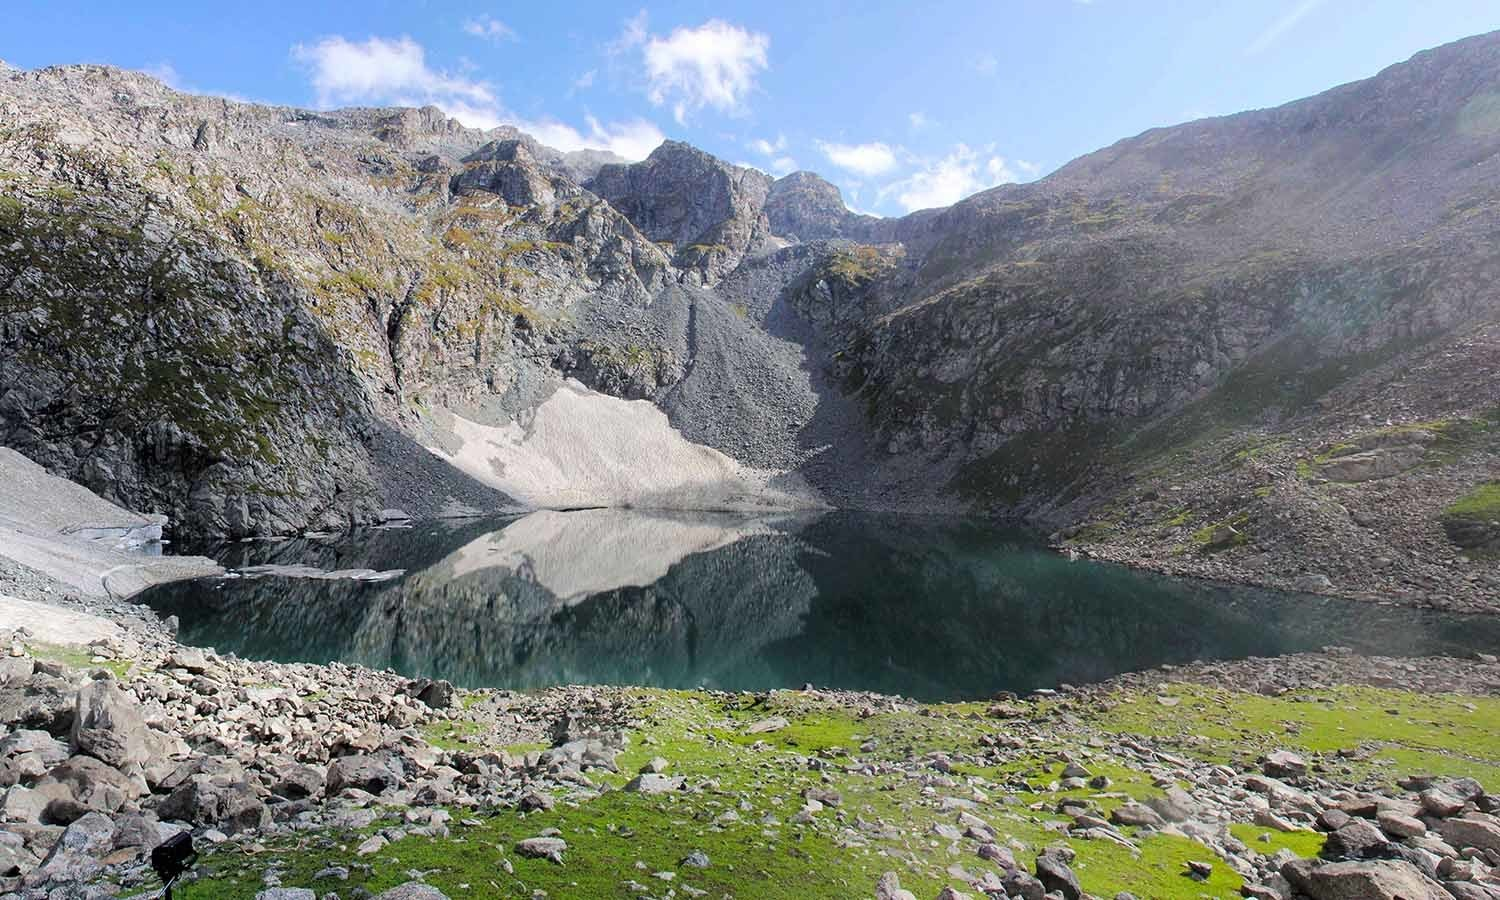 Bashigram Lake  is located in the alpine zone of Bashigram Valley reaching a height of 11,500 feet